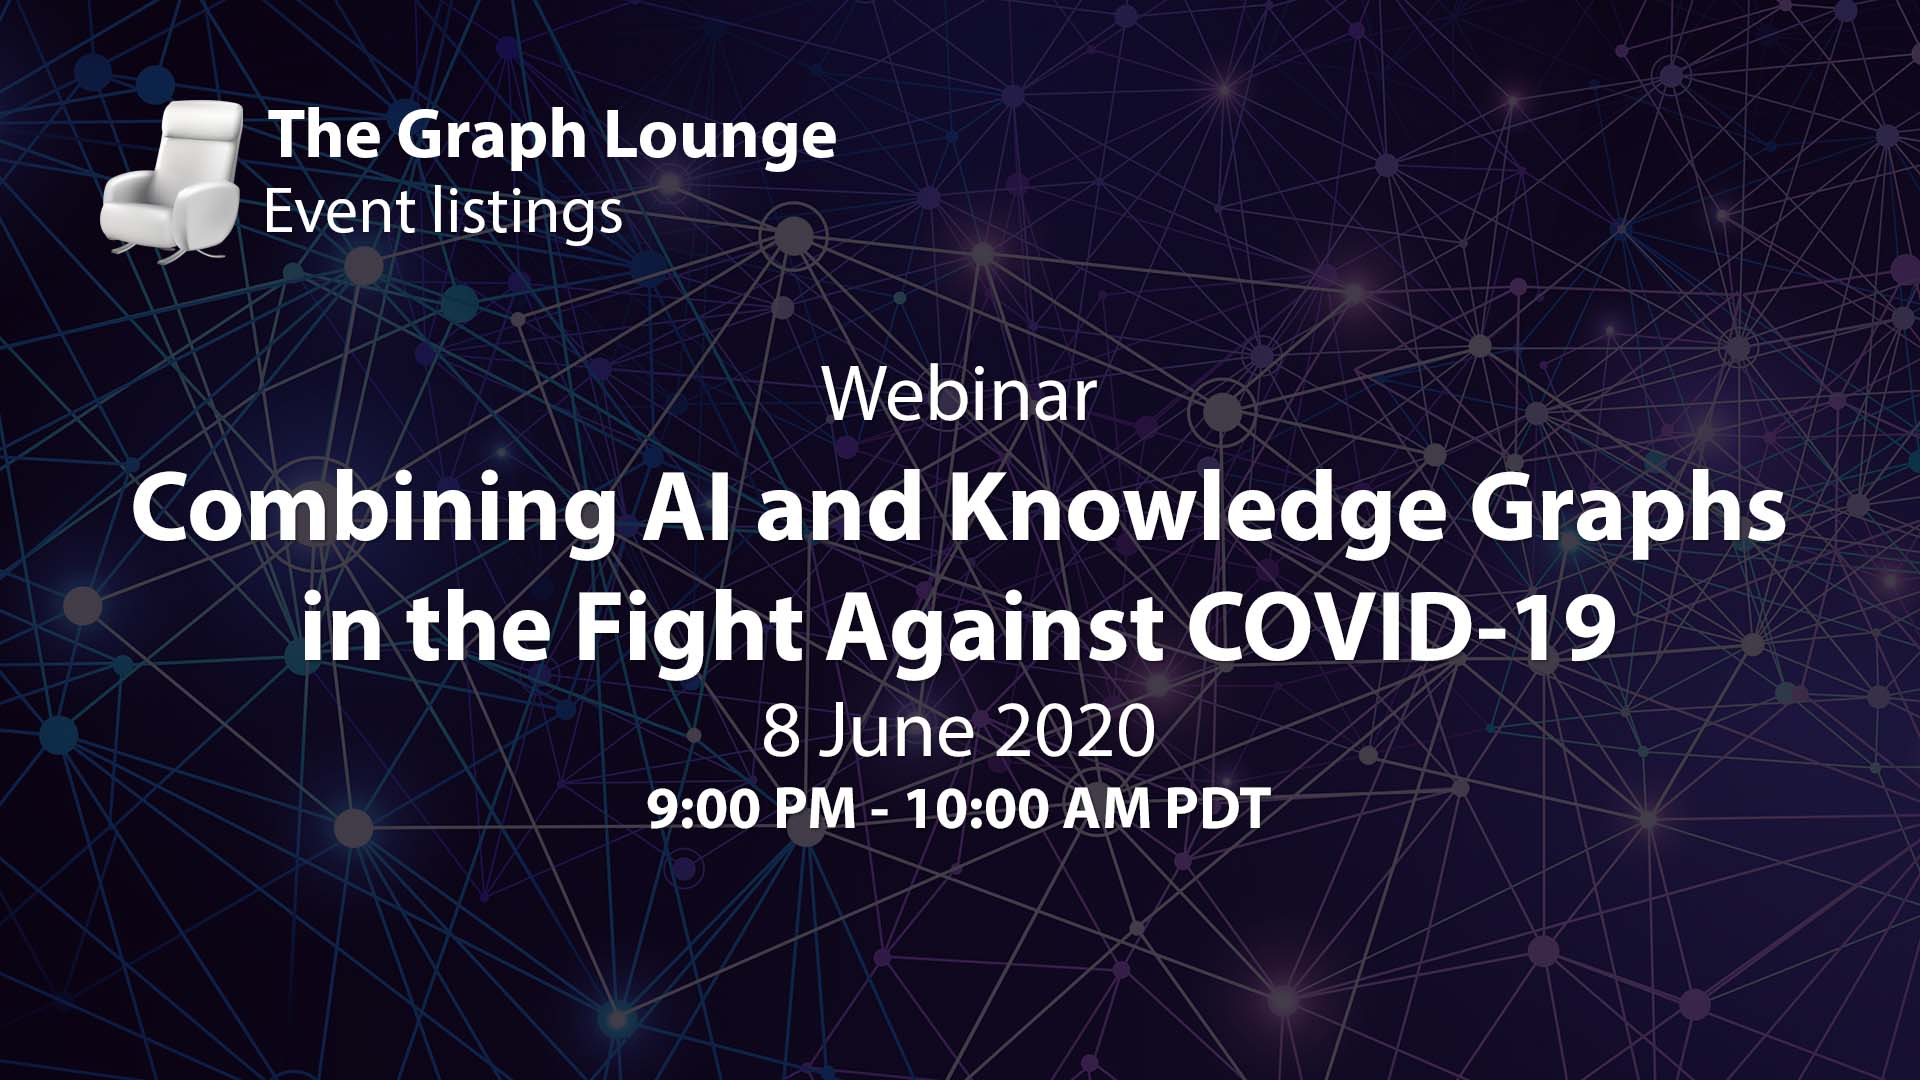 Combining AI and Knowledge Graphs in the Fight Against COVID-19